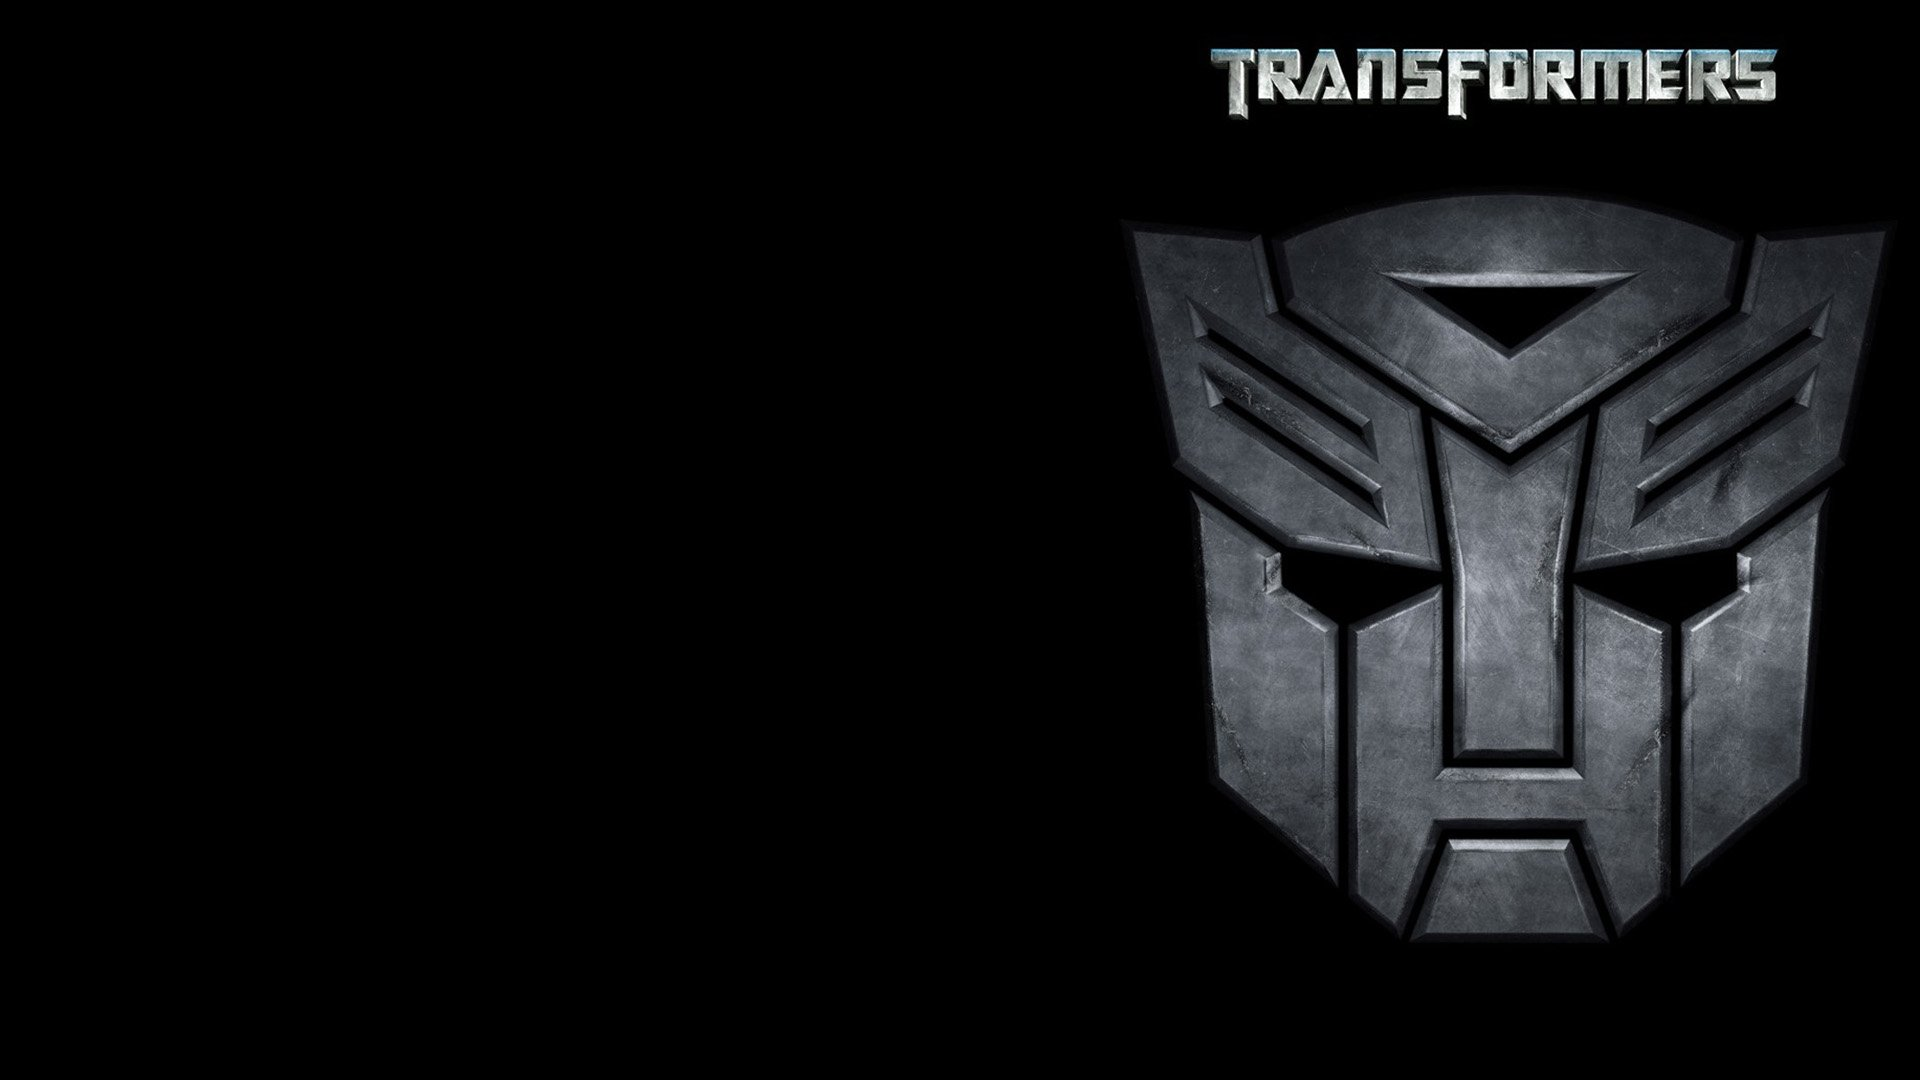 Transformers Autobot Logo Exclusive HD Wallpapers 5141 1920x1080